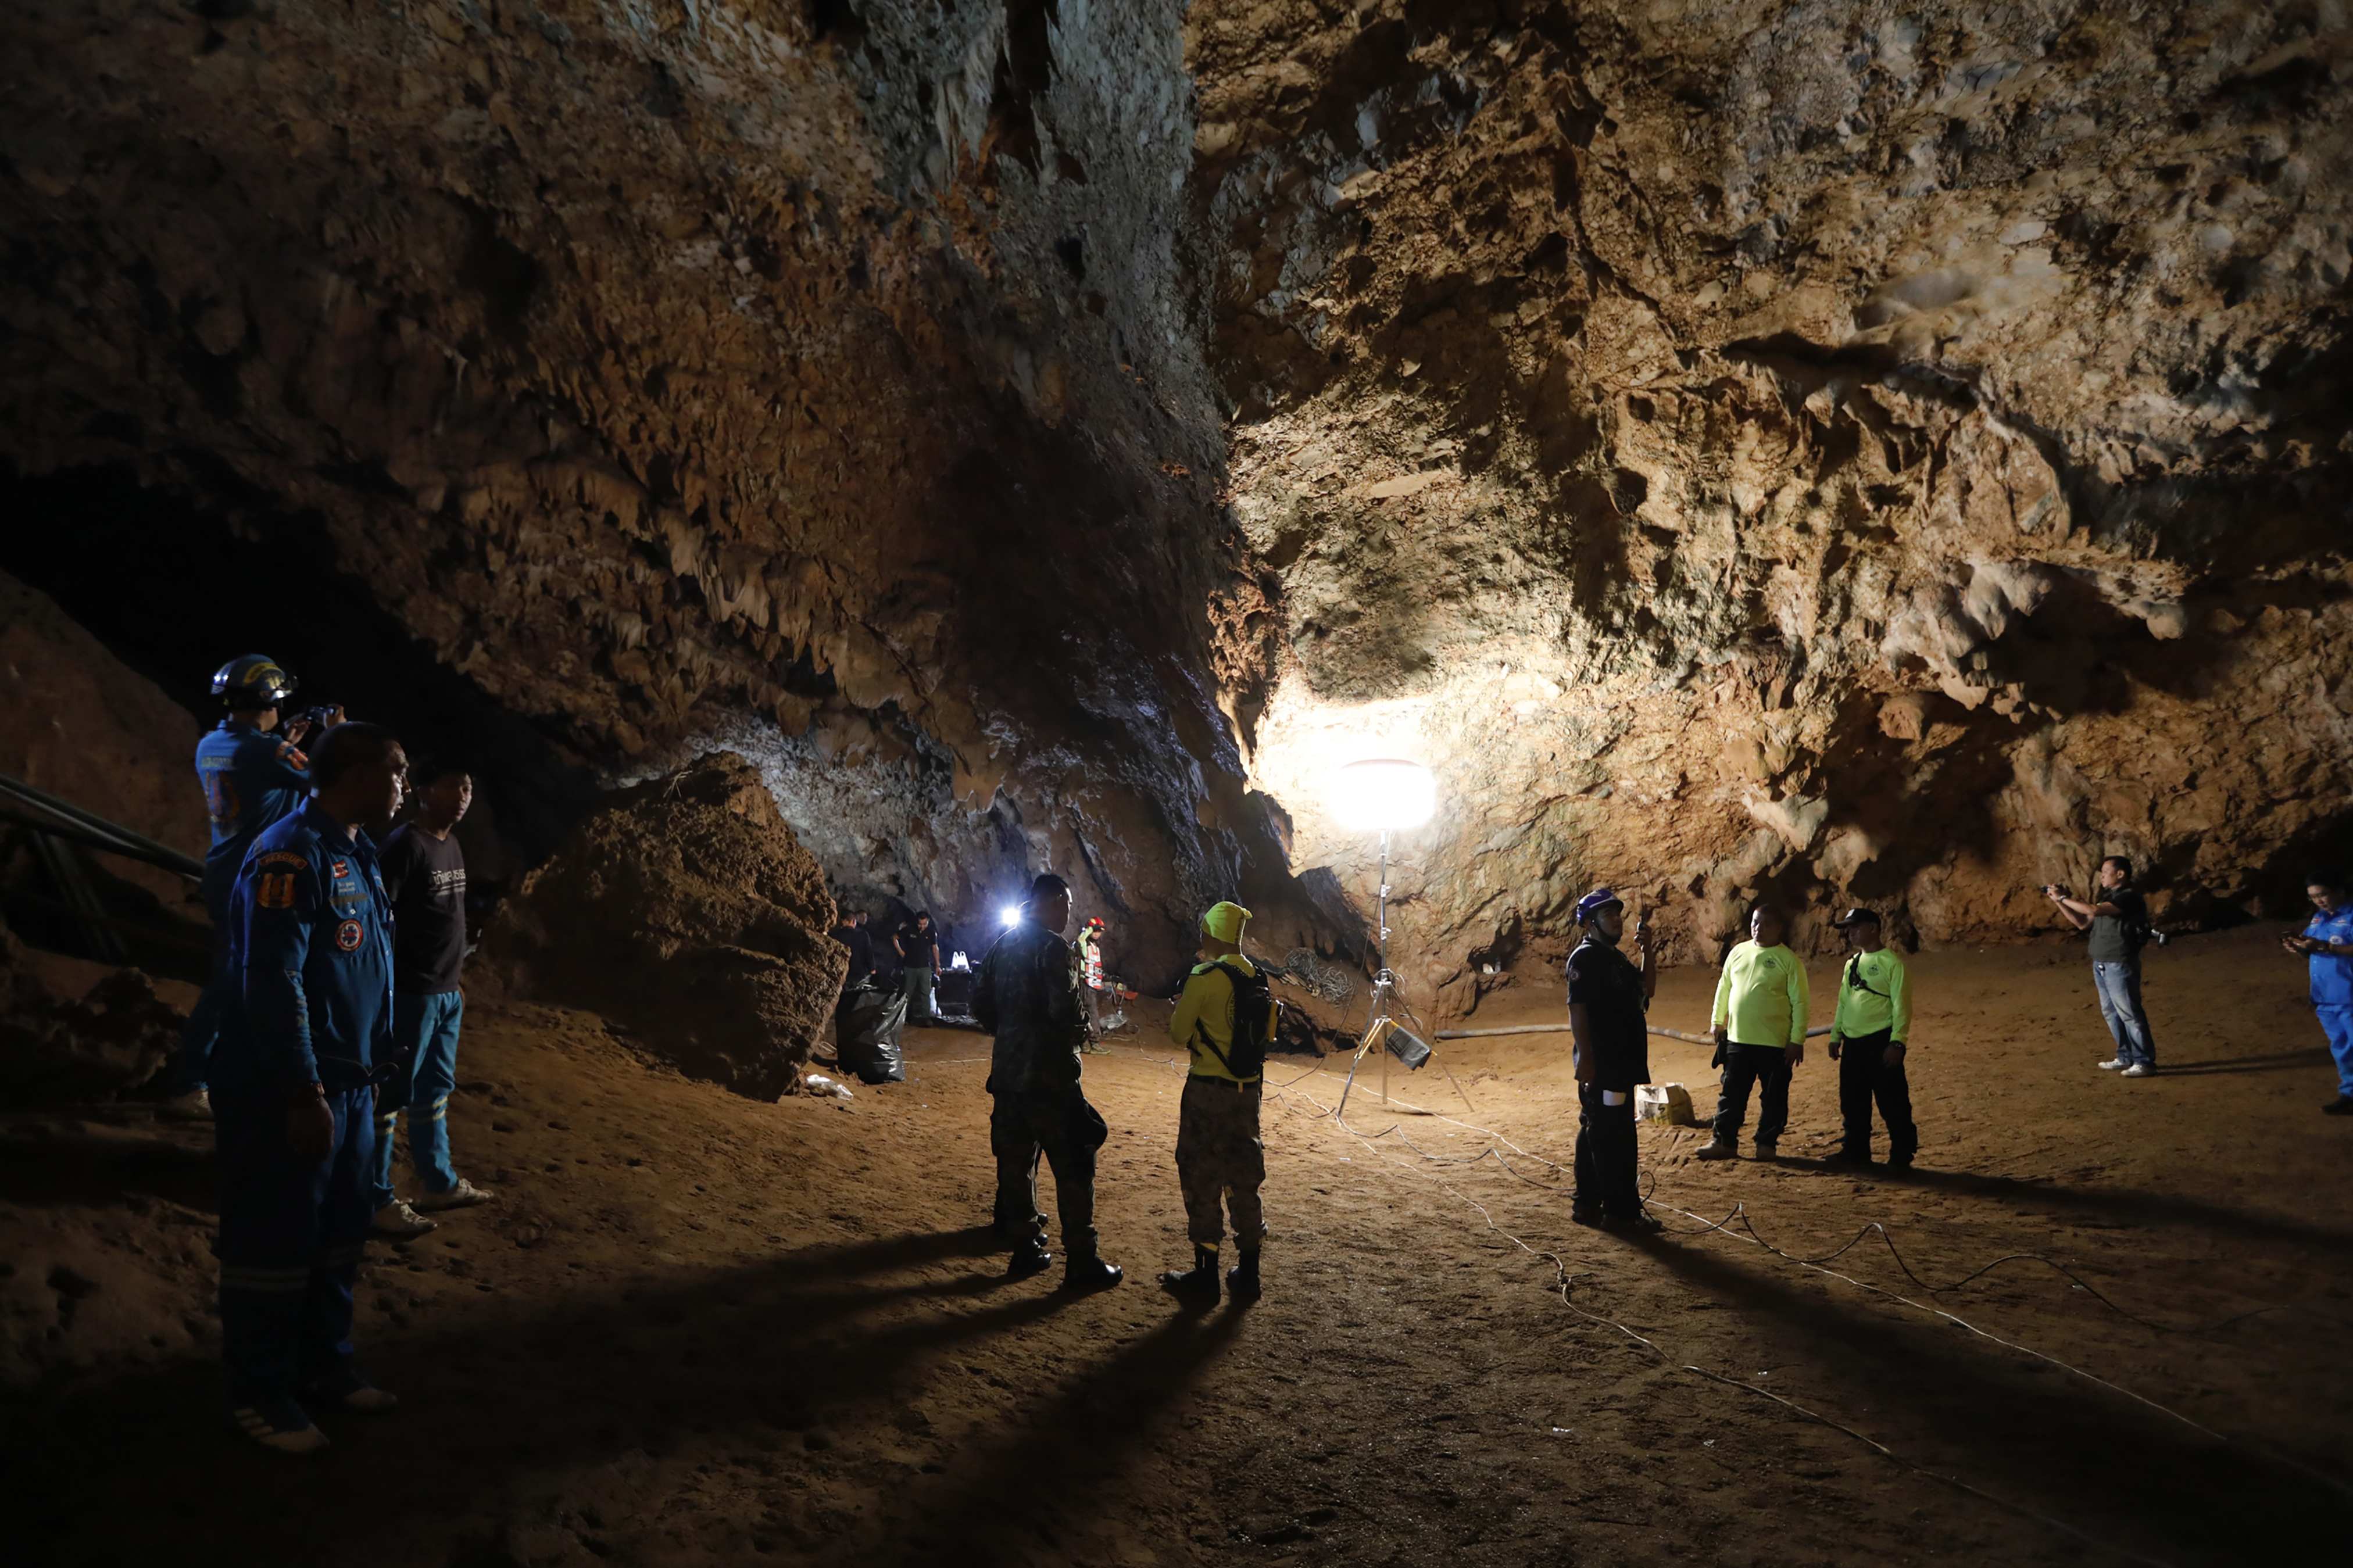 Rescue teams gather in a deep cave where a group of boys went missing in Chang Rai, Thailand on June 25, 2018.